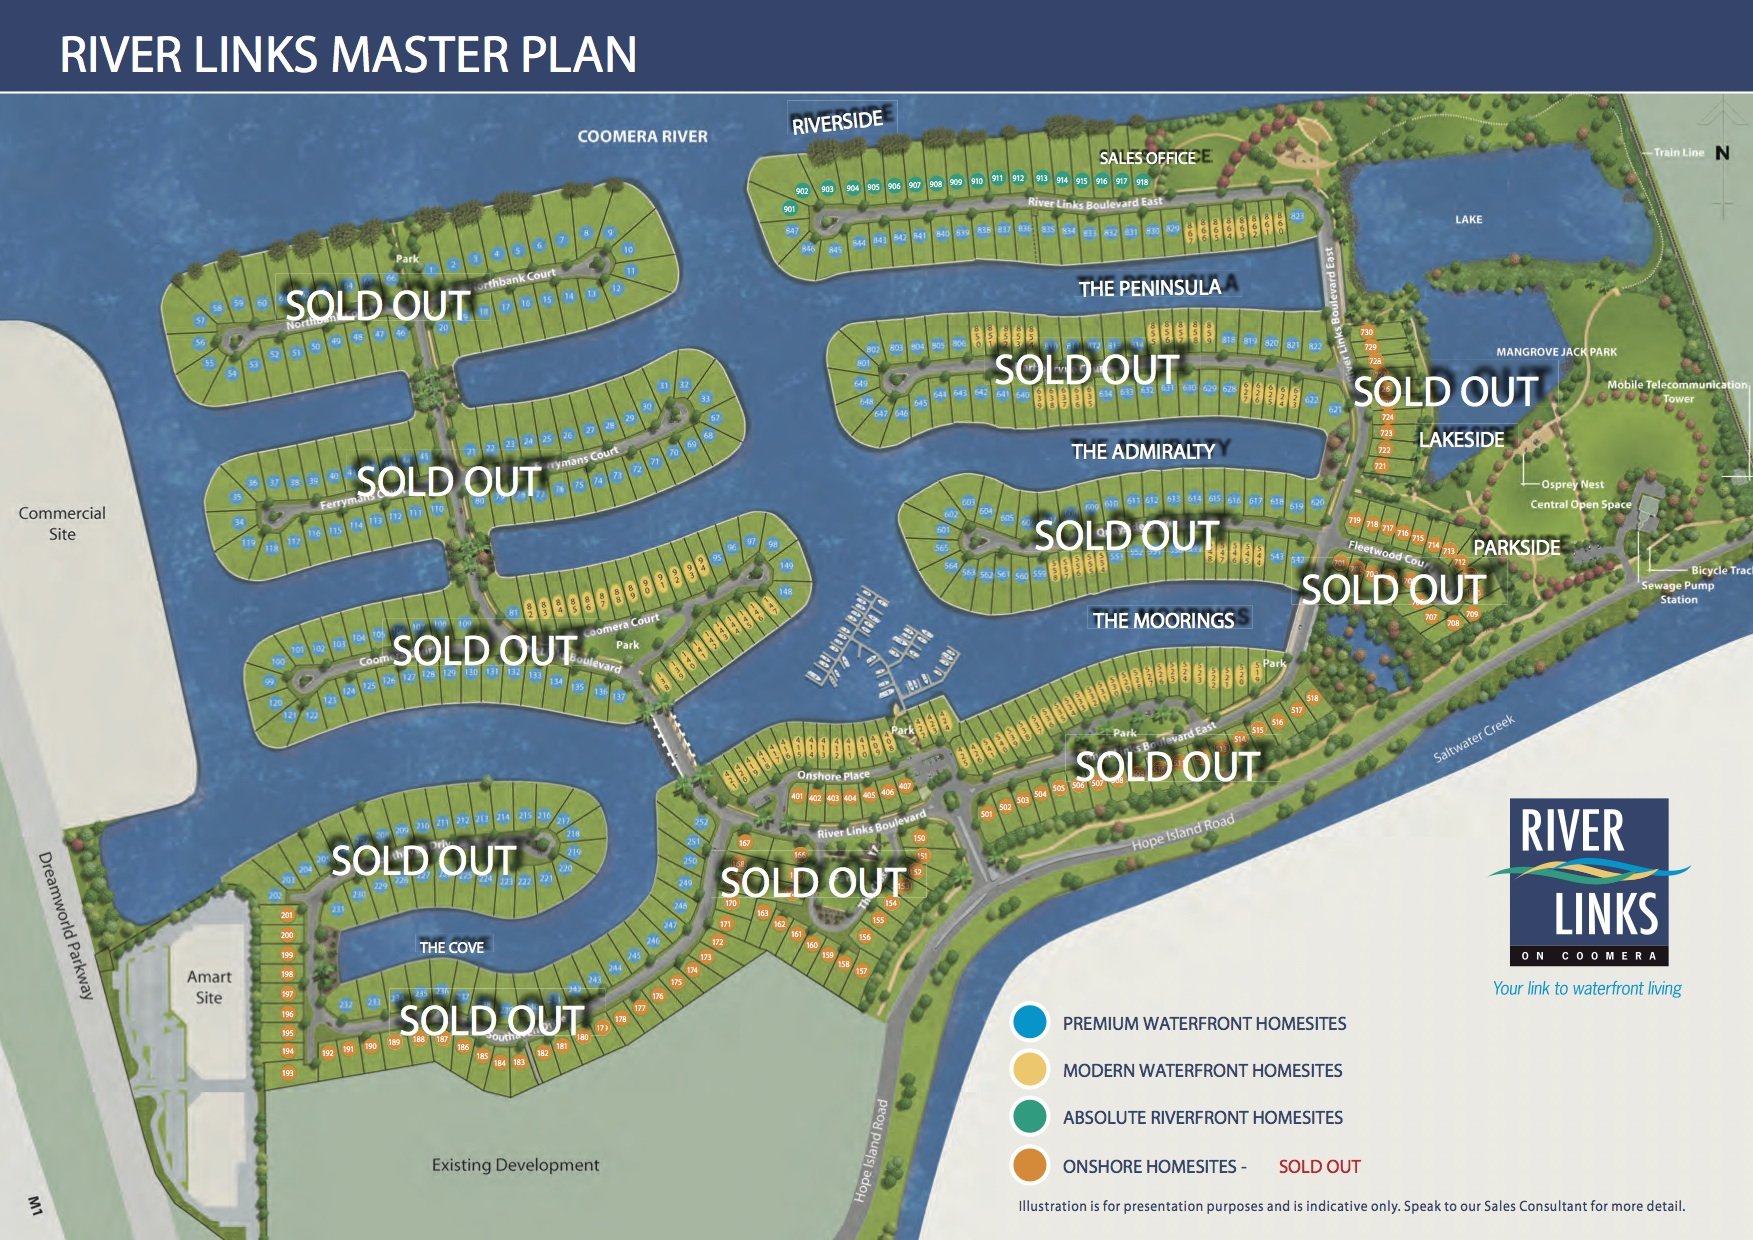 JCD_RIVERLINKS_MASTERPLAN